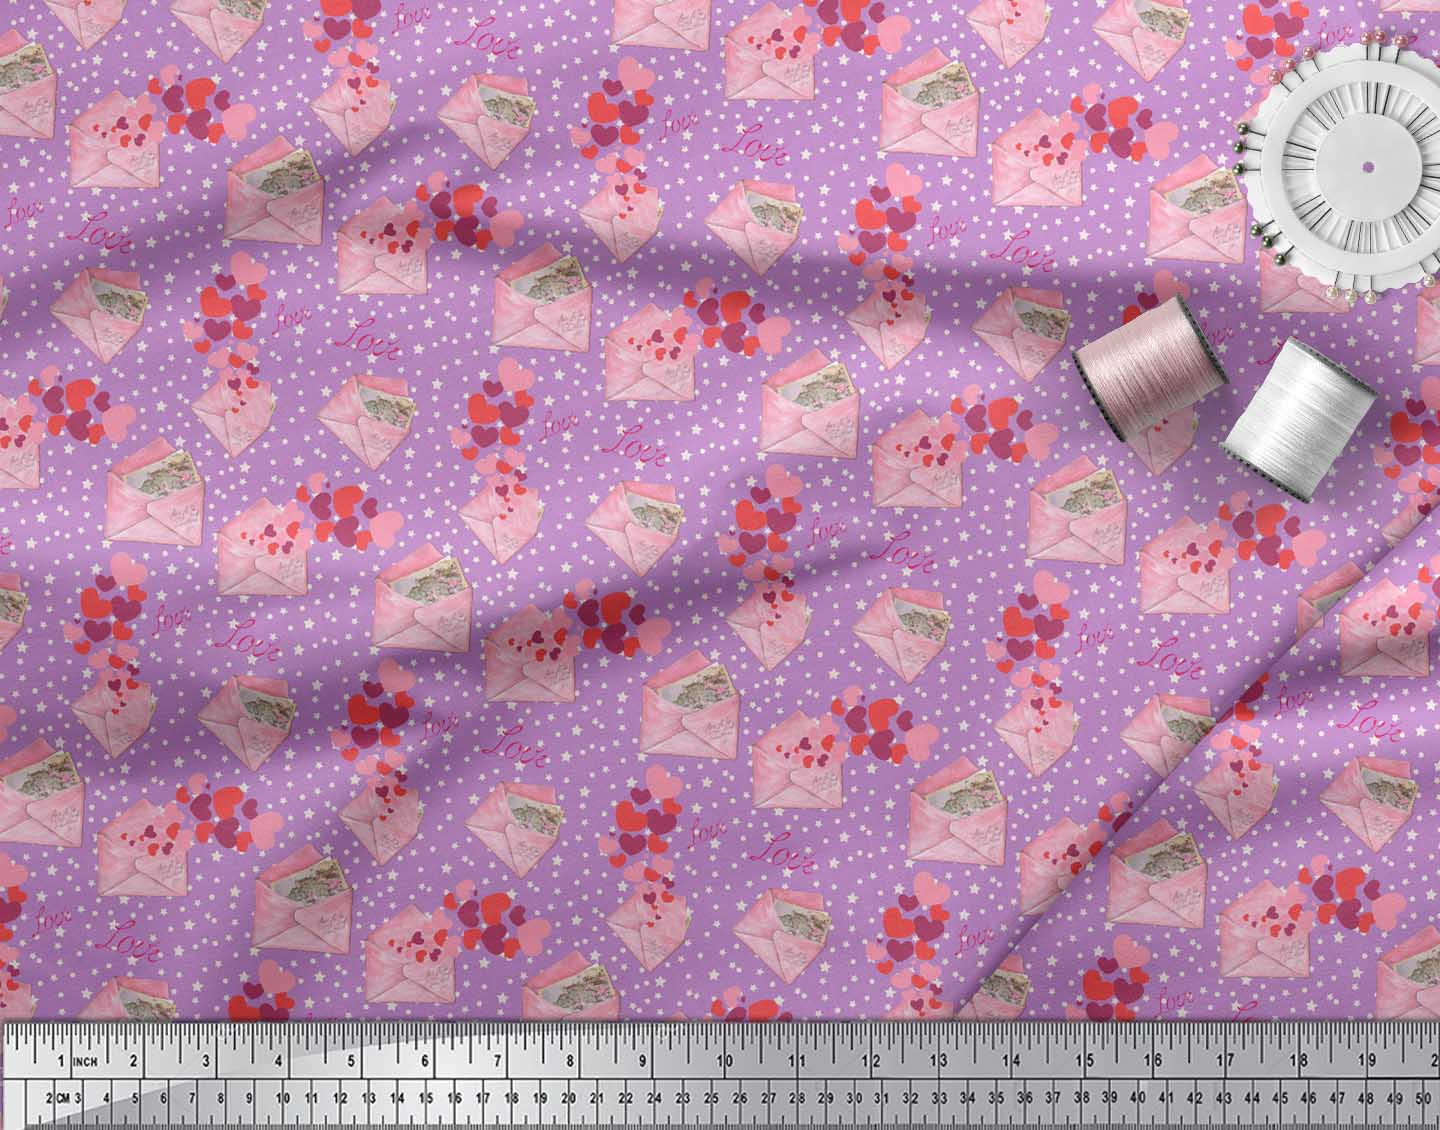 Soimoi-Purple-Cotton-Poplin-Fabric-Envelope-Star-amp-Heart-Print-Fabric-1Yd thumbnail 3